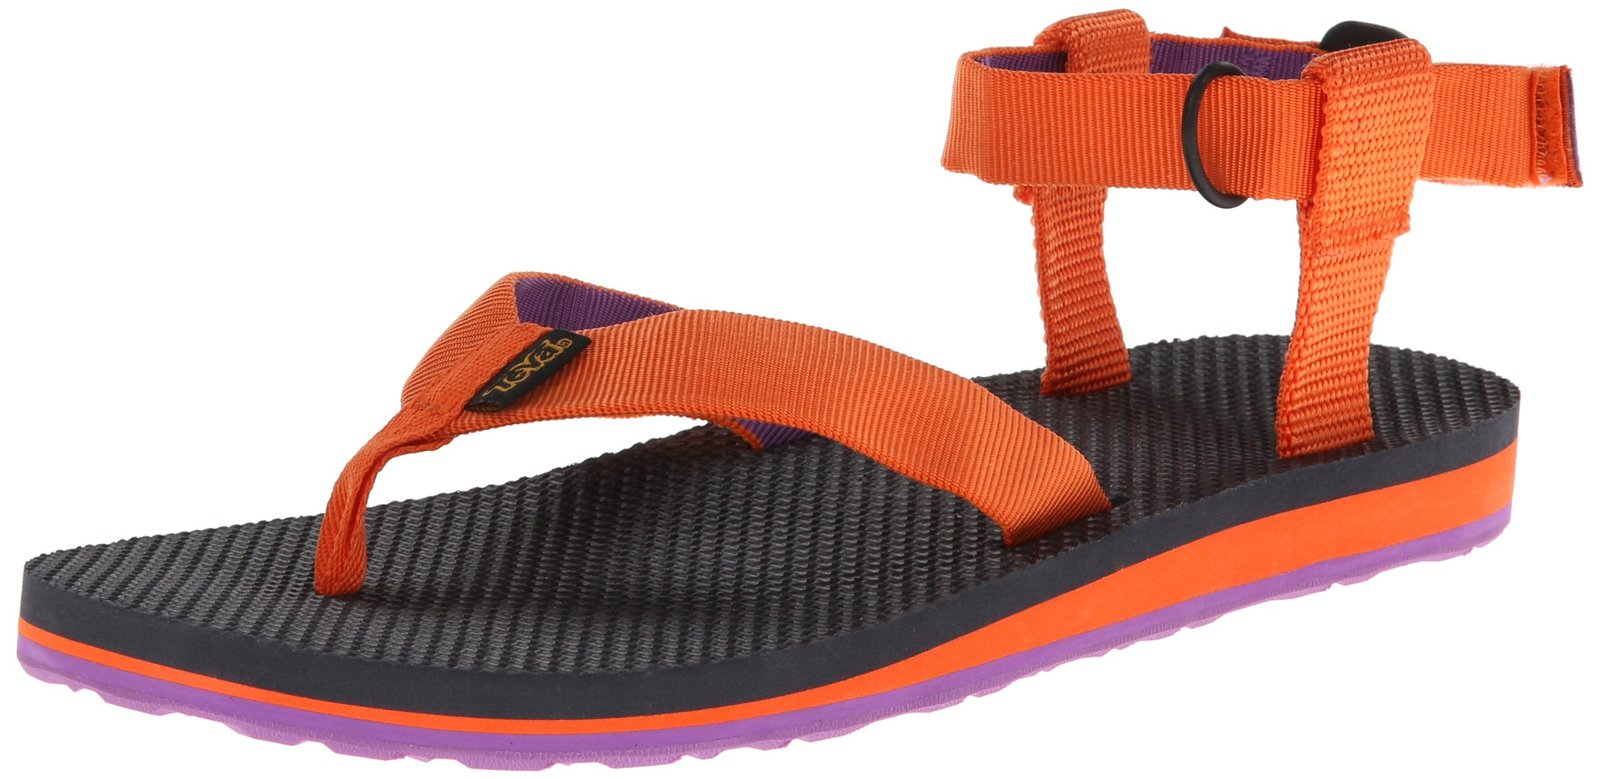 Teva Women's Original Sandal,Orange/Purple,5 M US